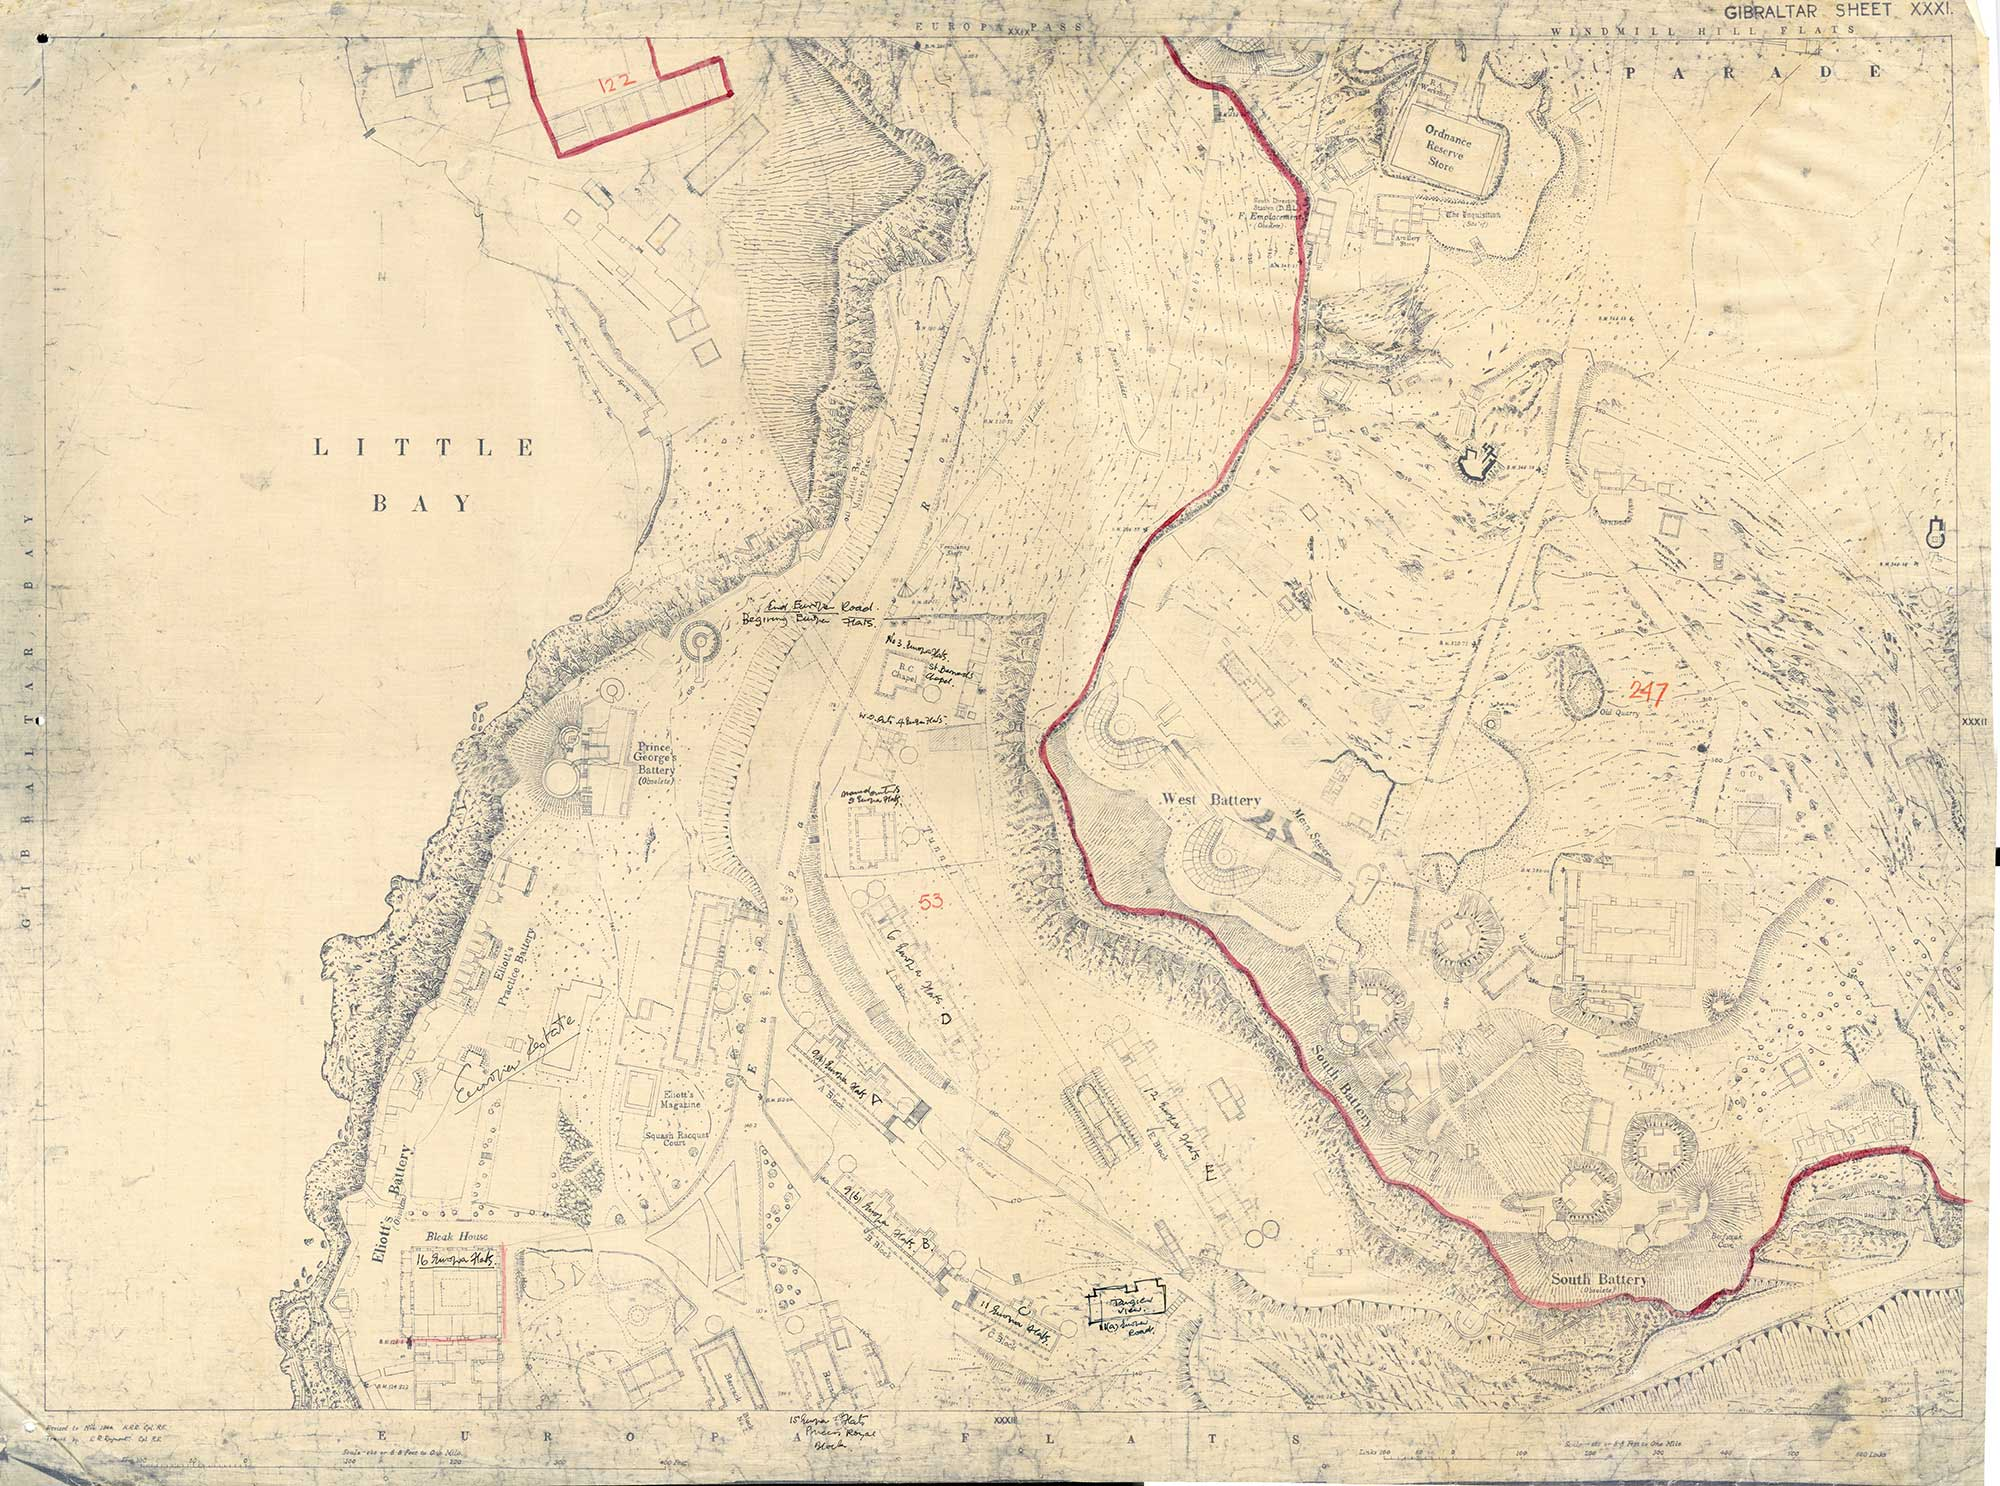 Map-18-Gibraltar-Sheet-31-1944-Little-bay-and-Elliot-Battery